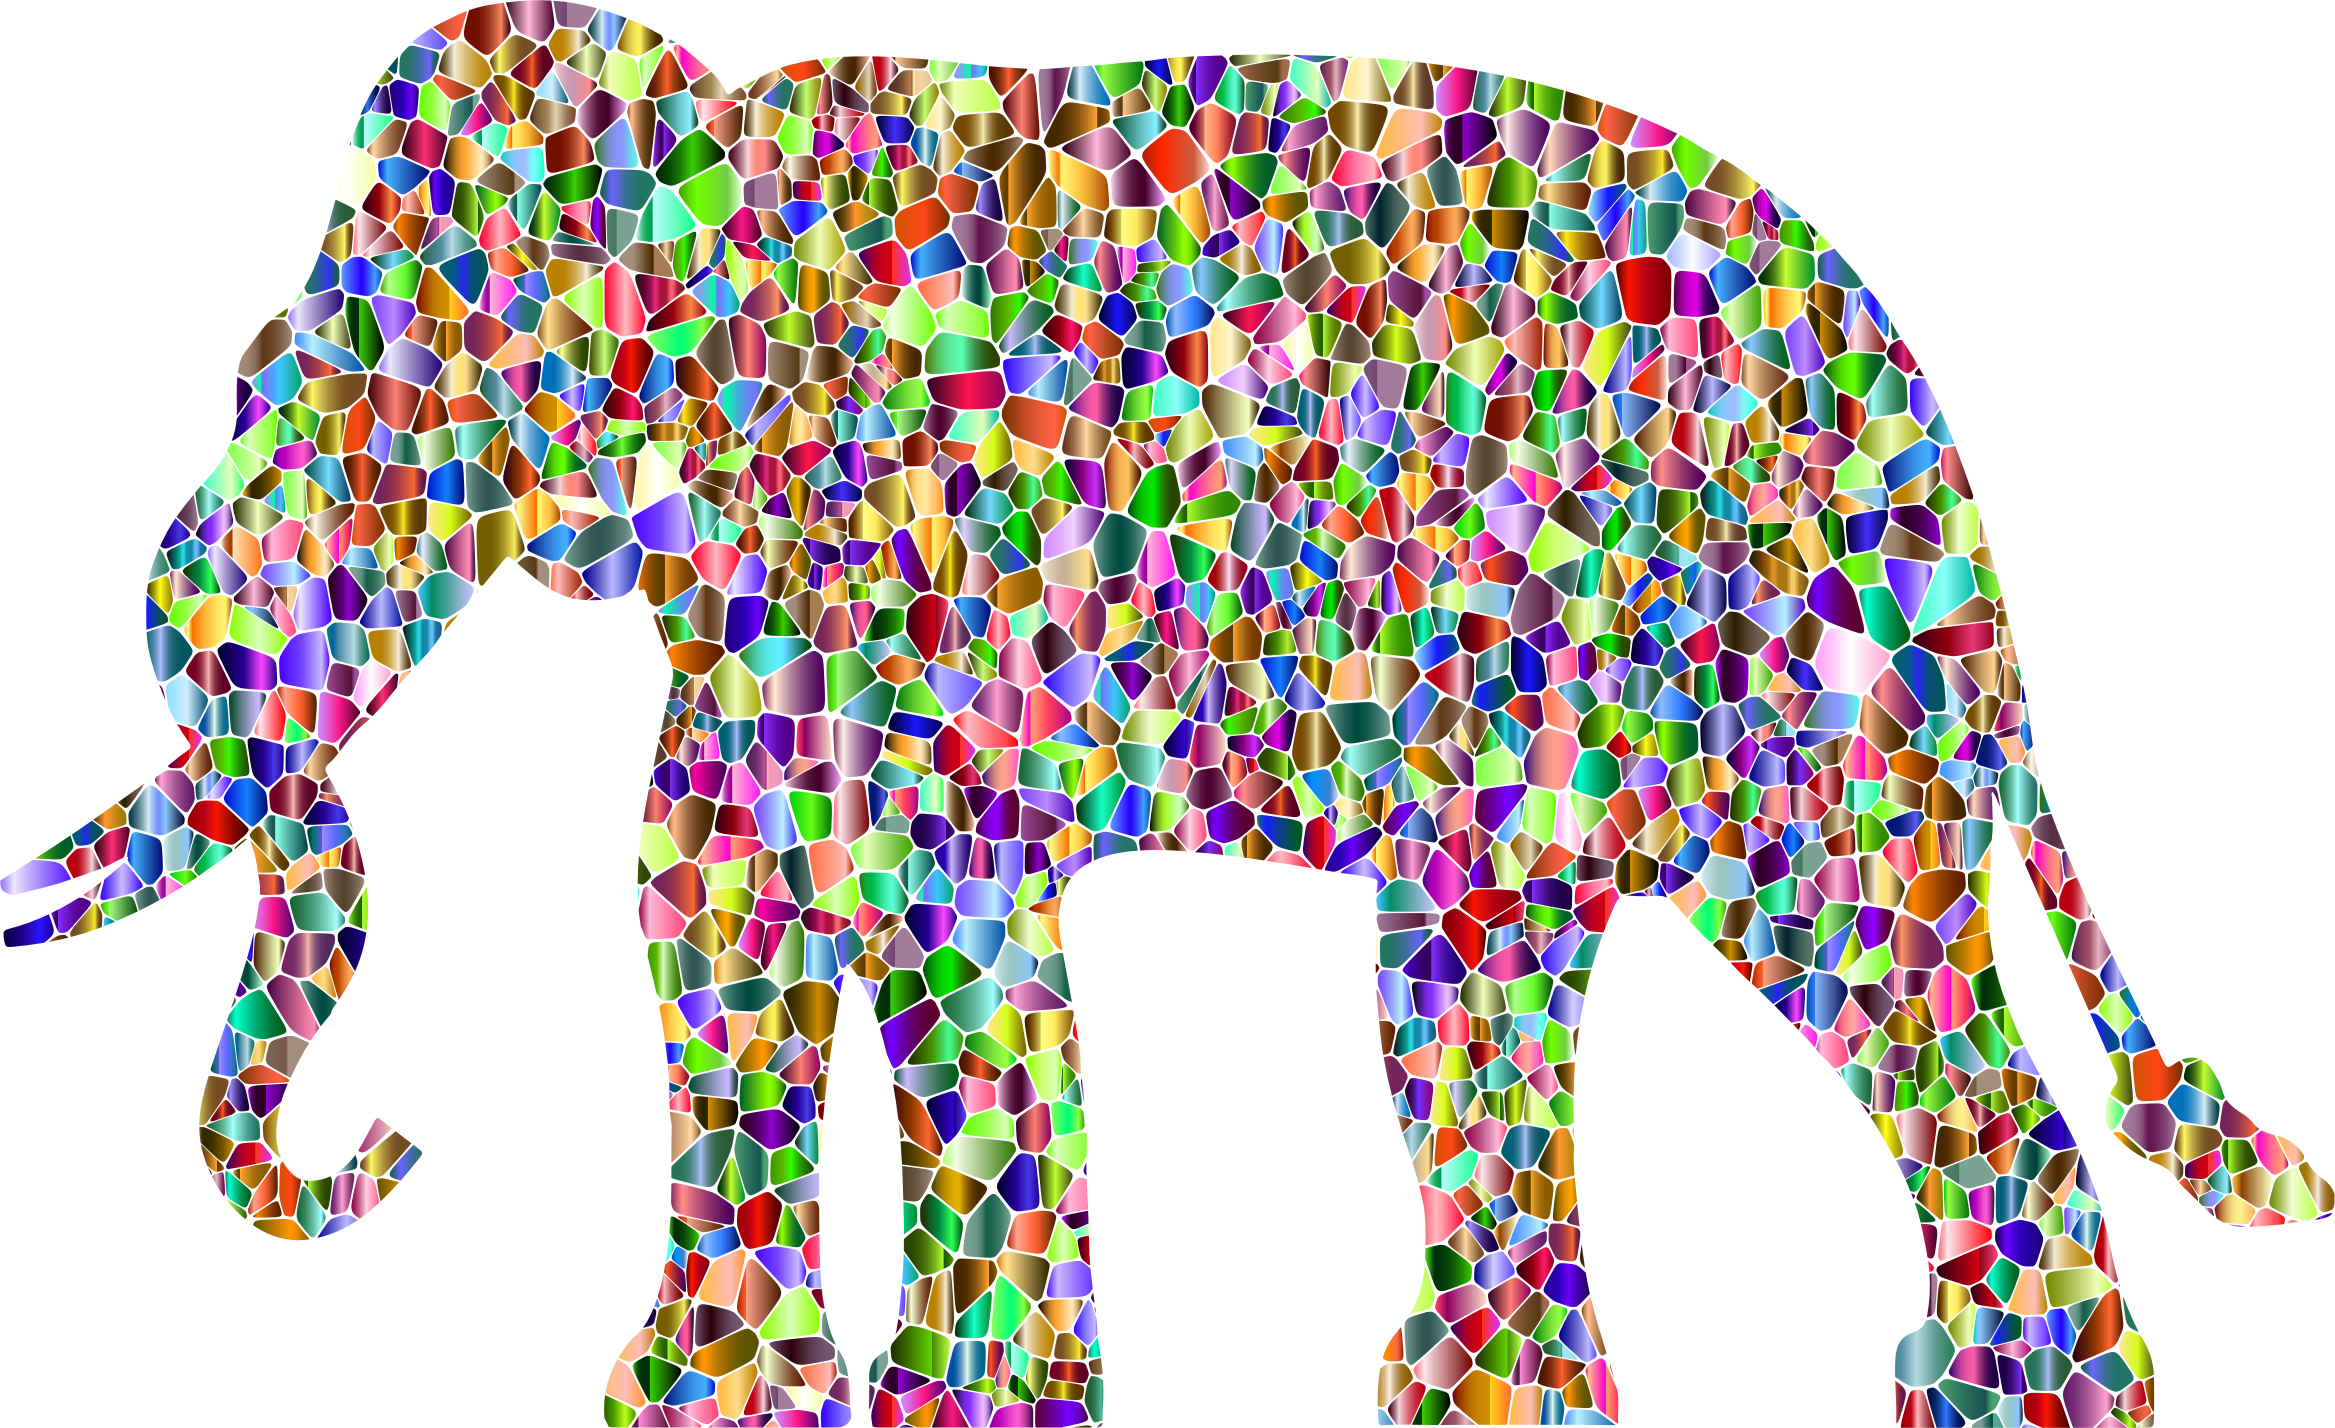 Elephant clipart rainbow. Vivid chromatic silhouette no